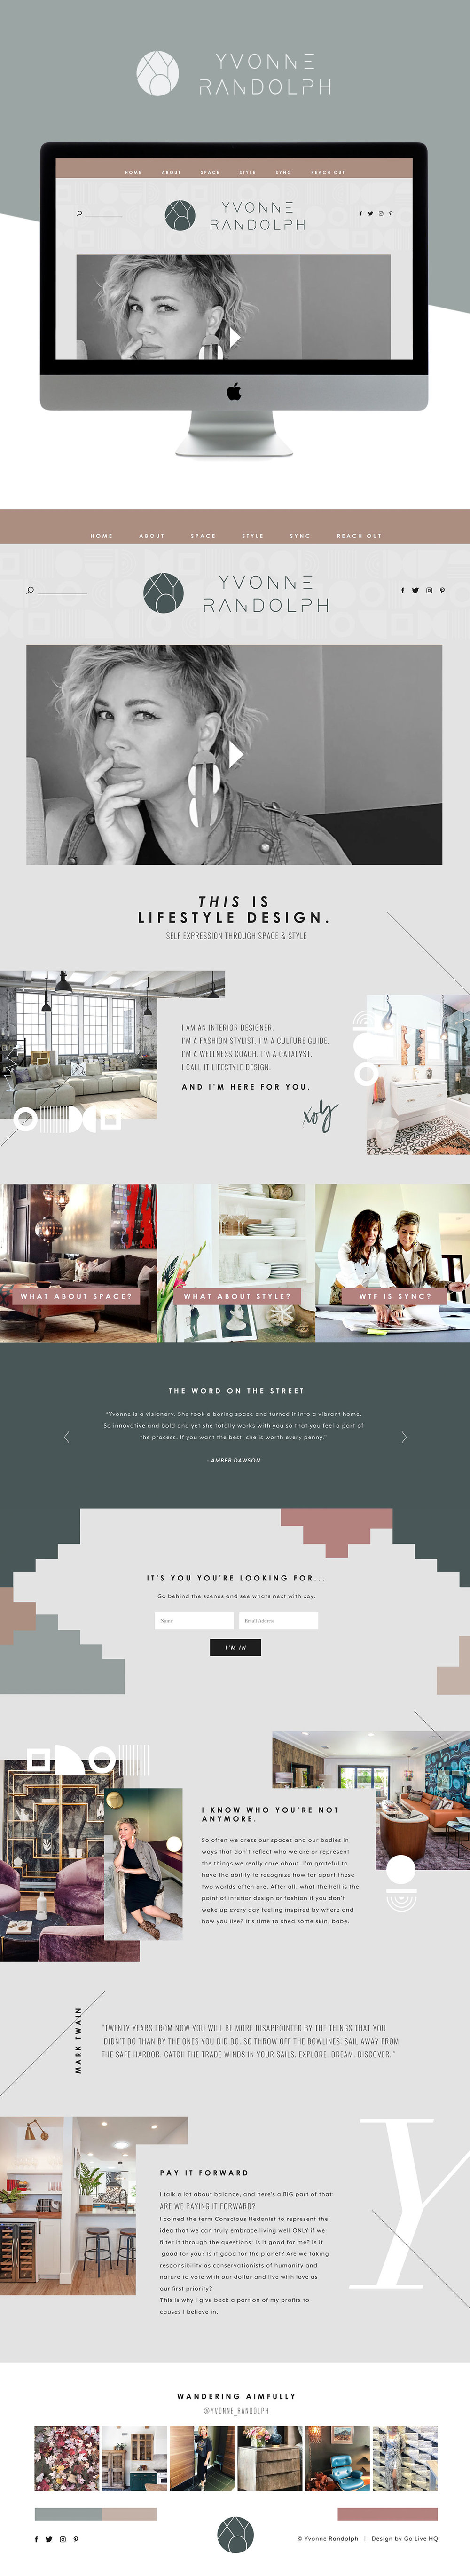 Sophisticated, edgy and modern website design for home designer | Website Design By Go Live HQ